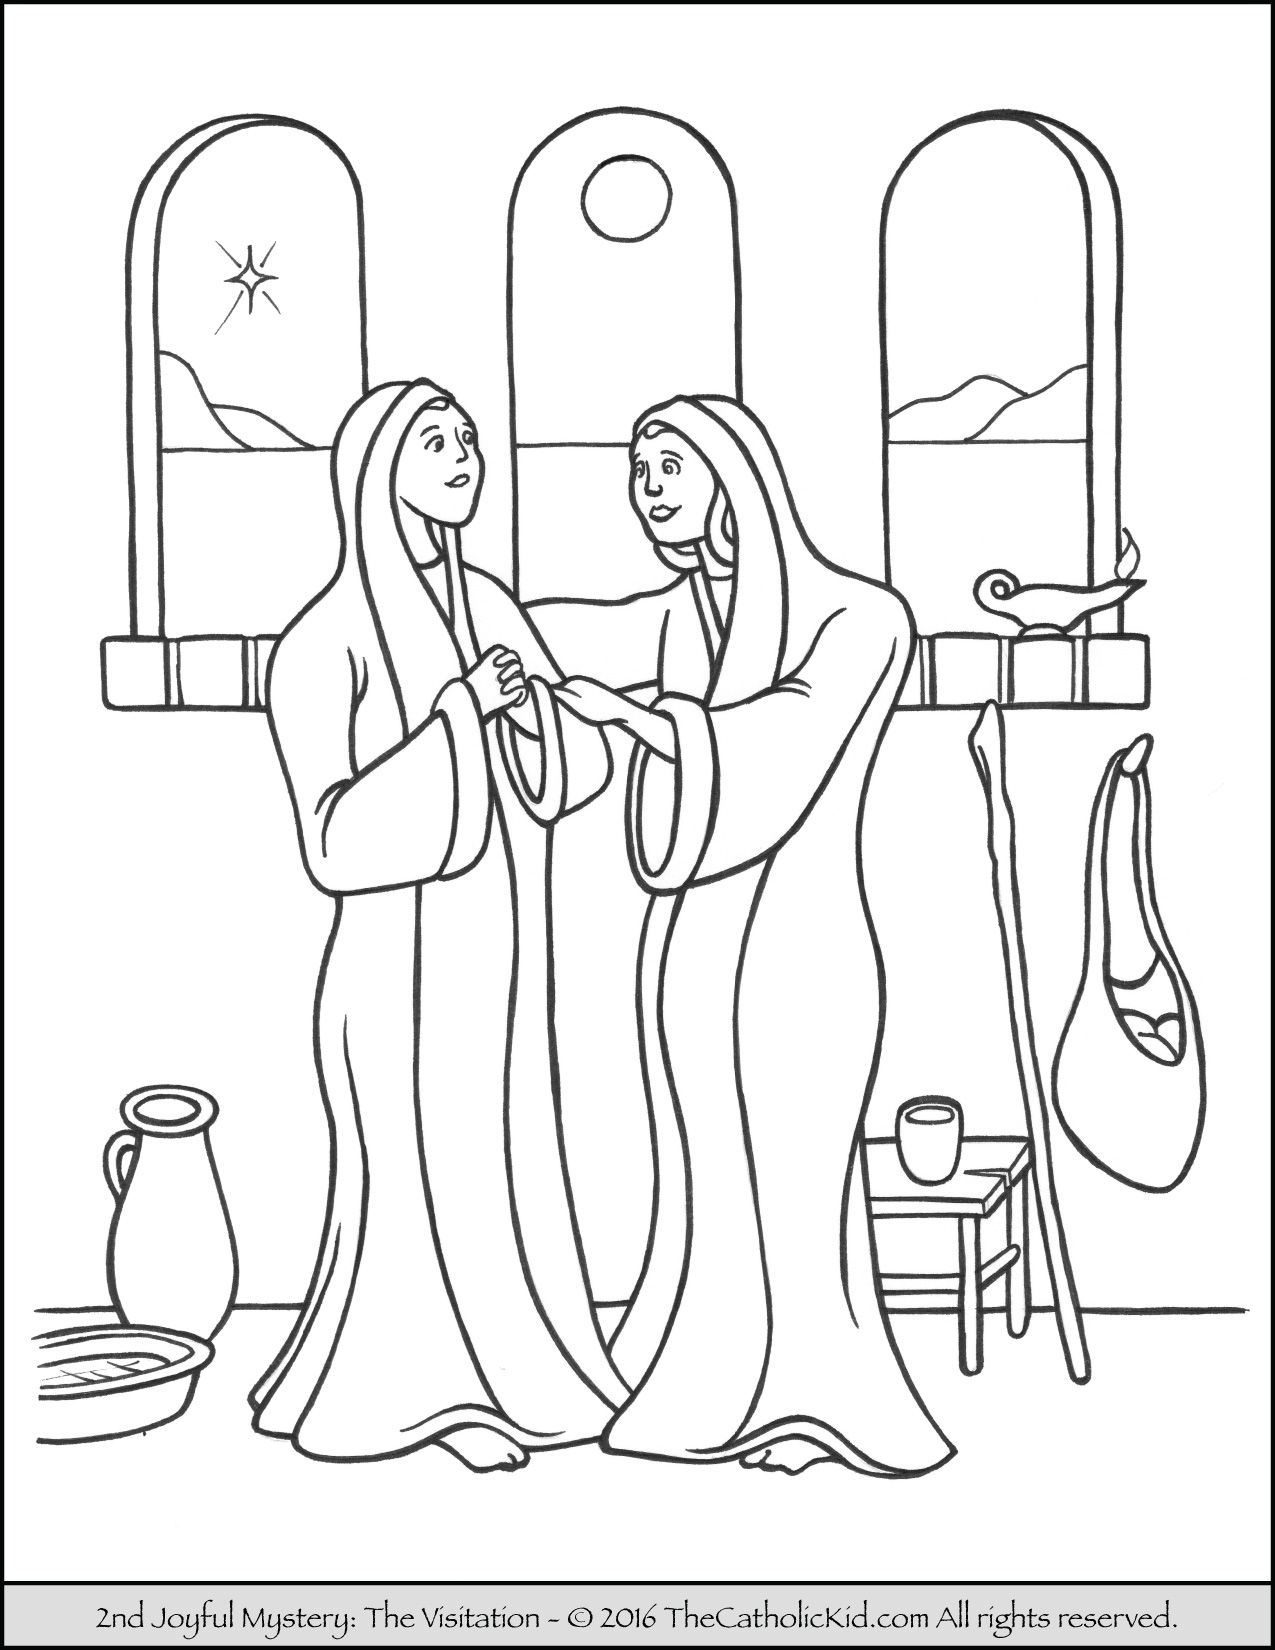 The 2nd Joyful Mystery Coloring Page